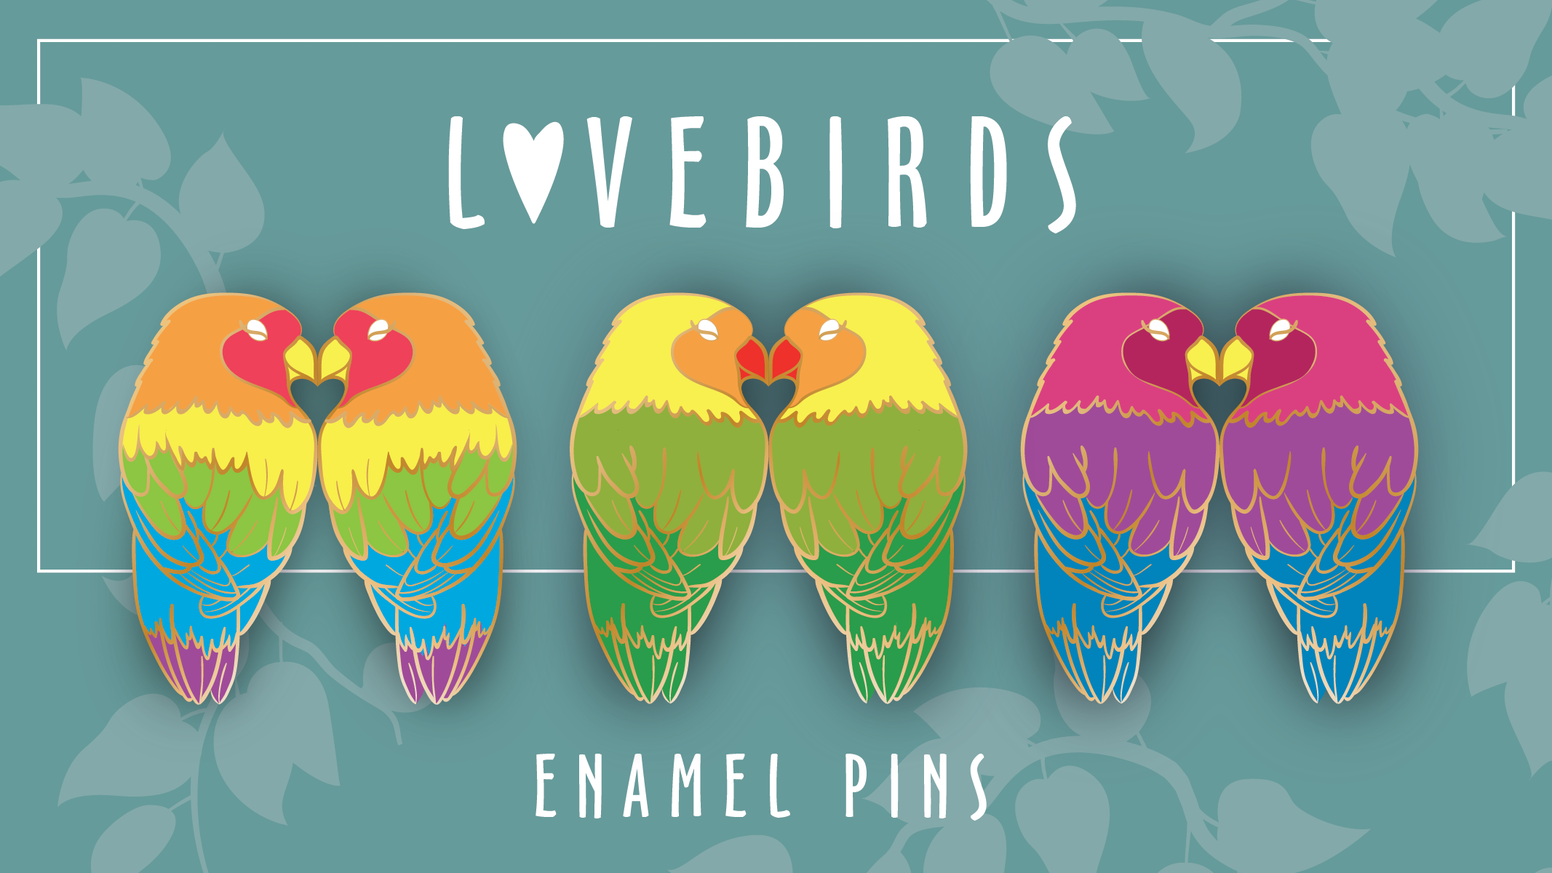 Lovebirds by Amy Ashton » Final pins — Kickstarter